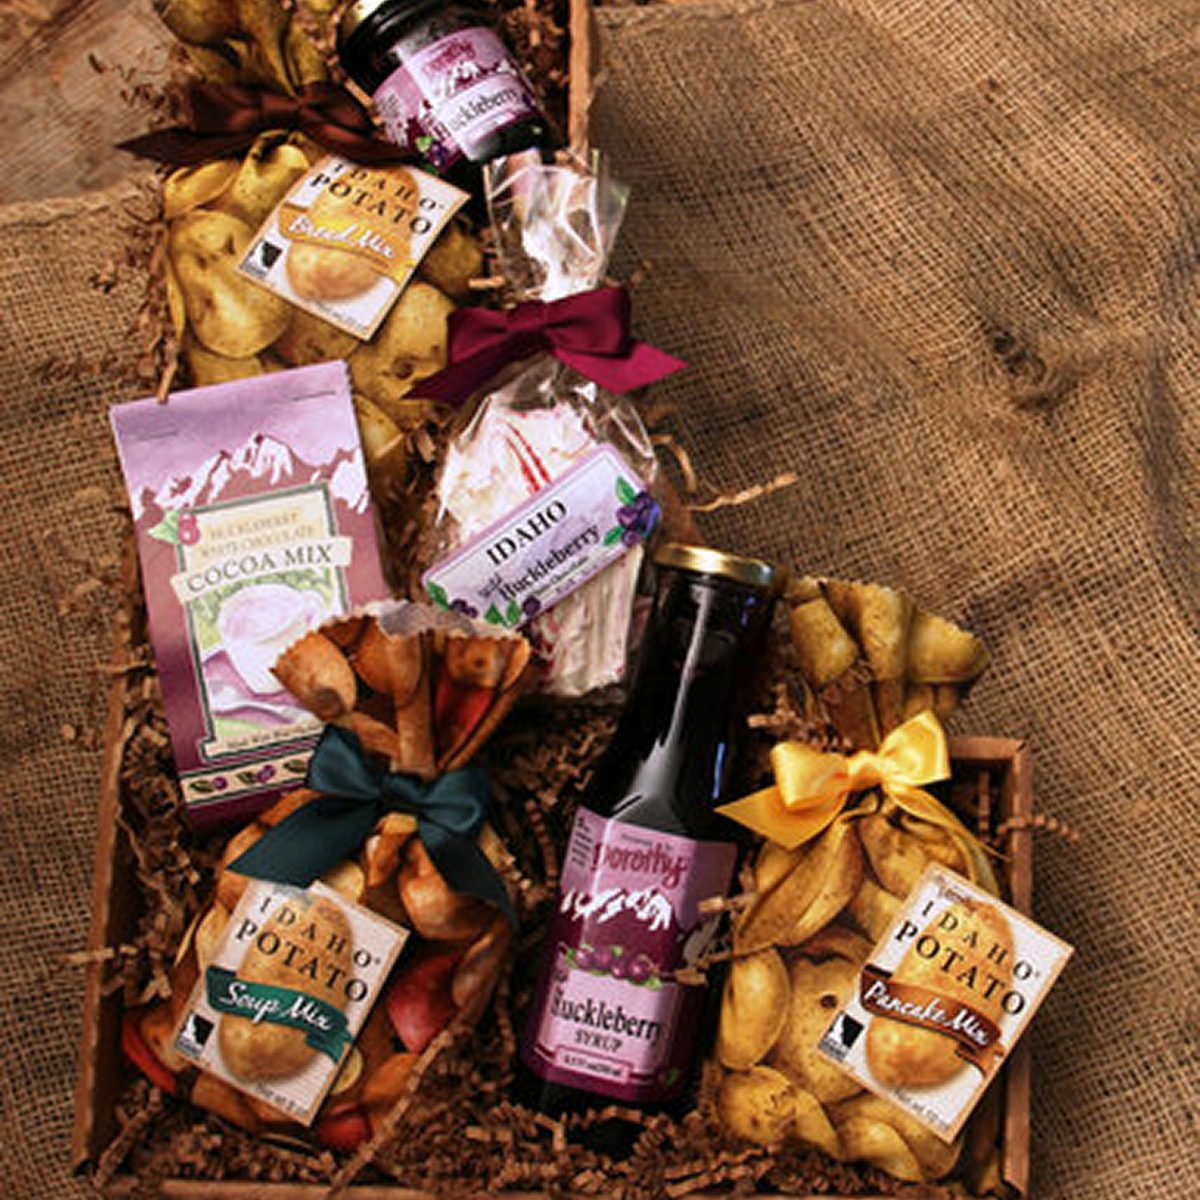 potatoes and huckleberries gift